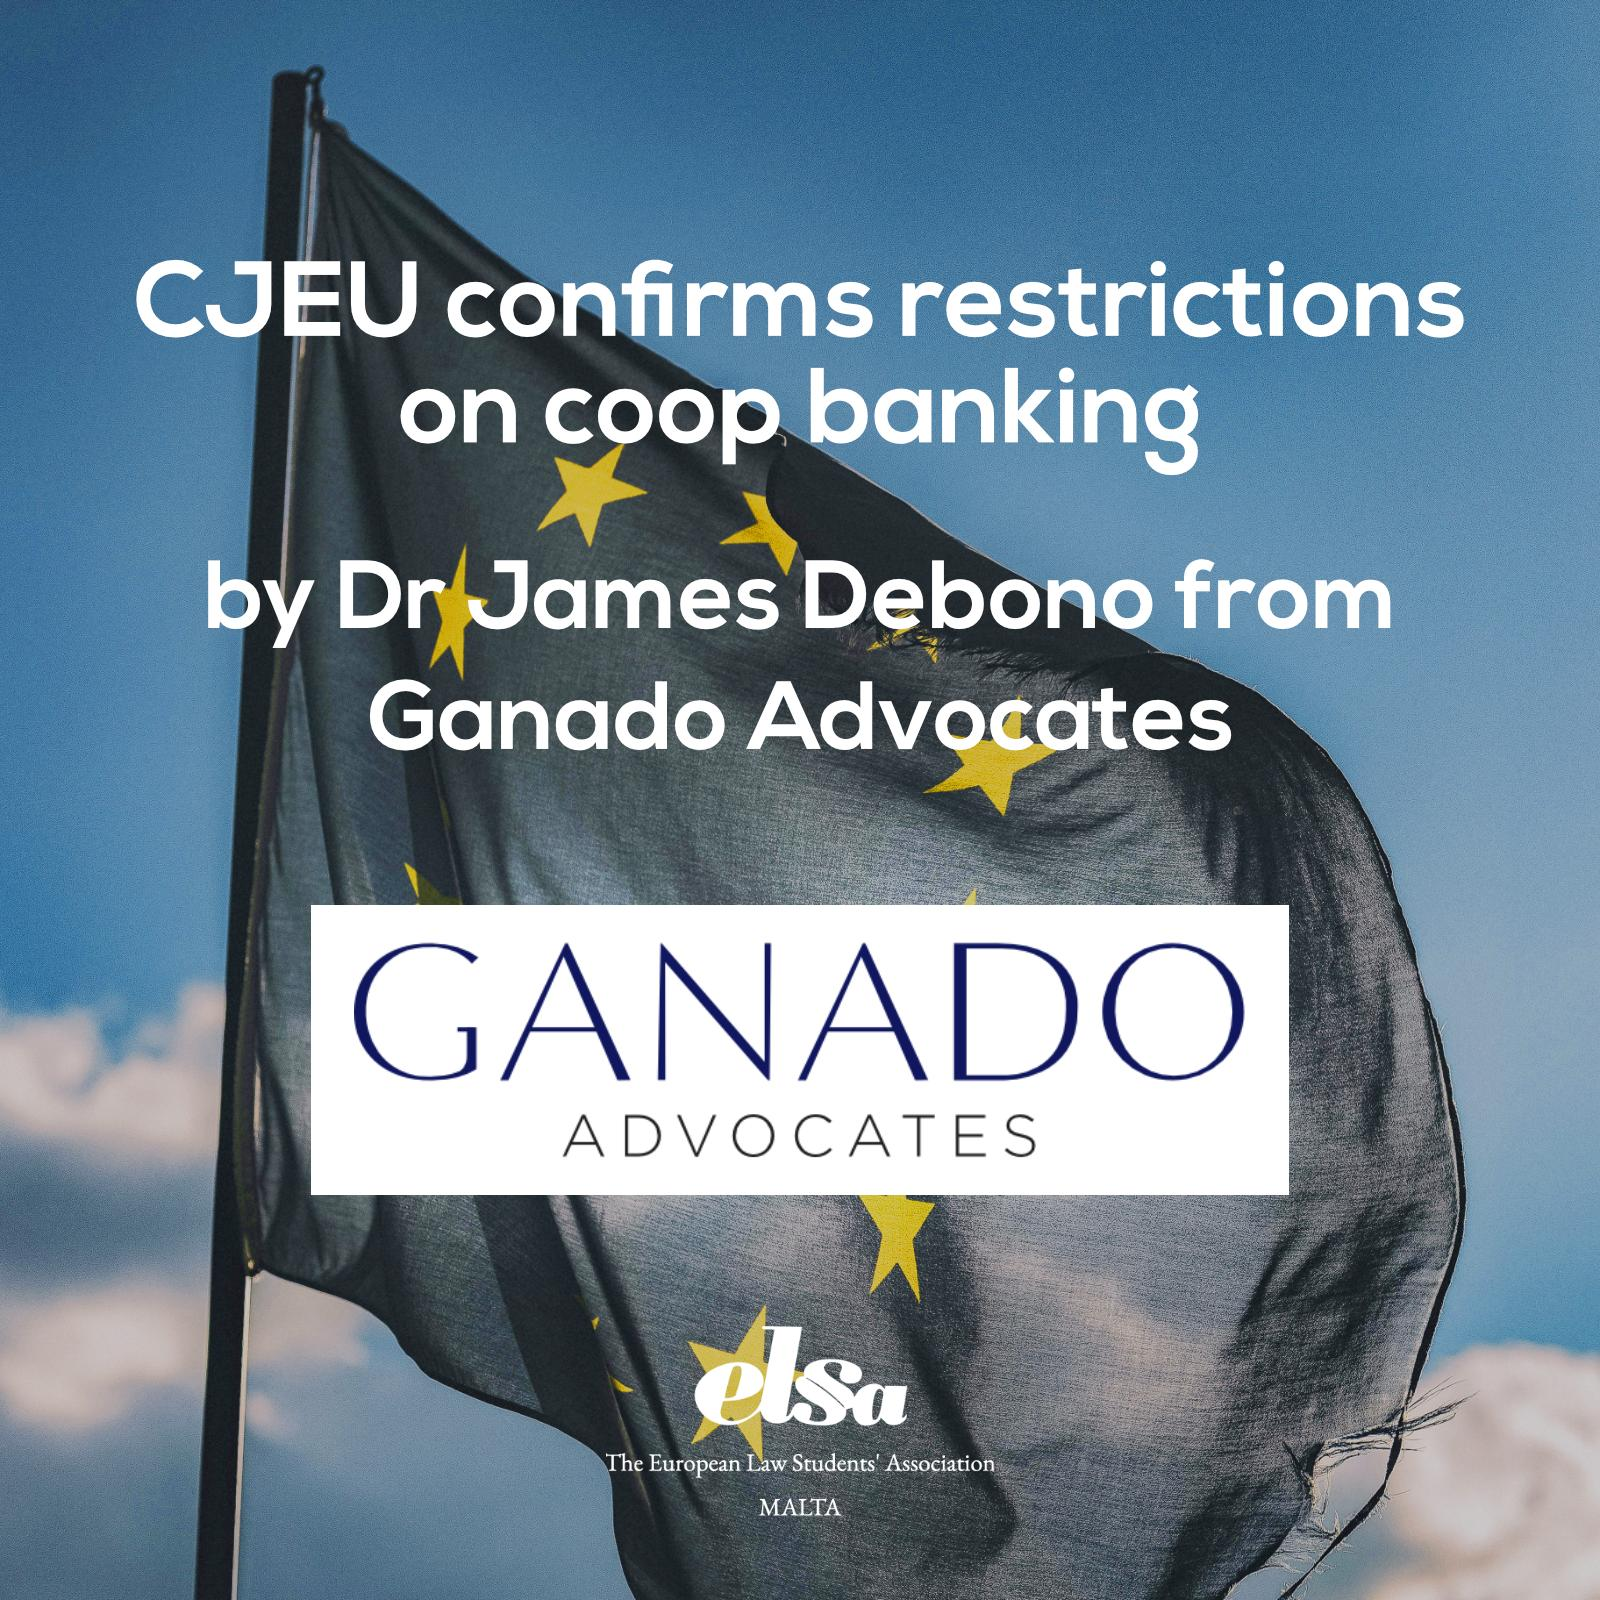 CJEU confirms restrictions on coop banking